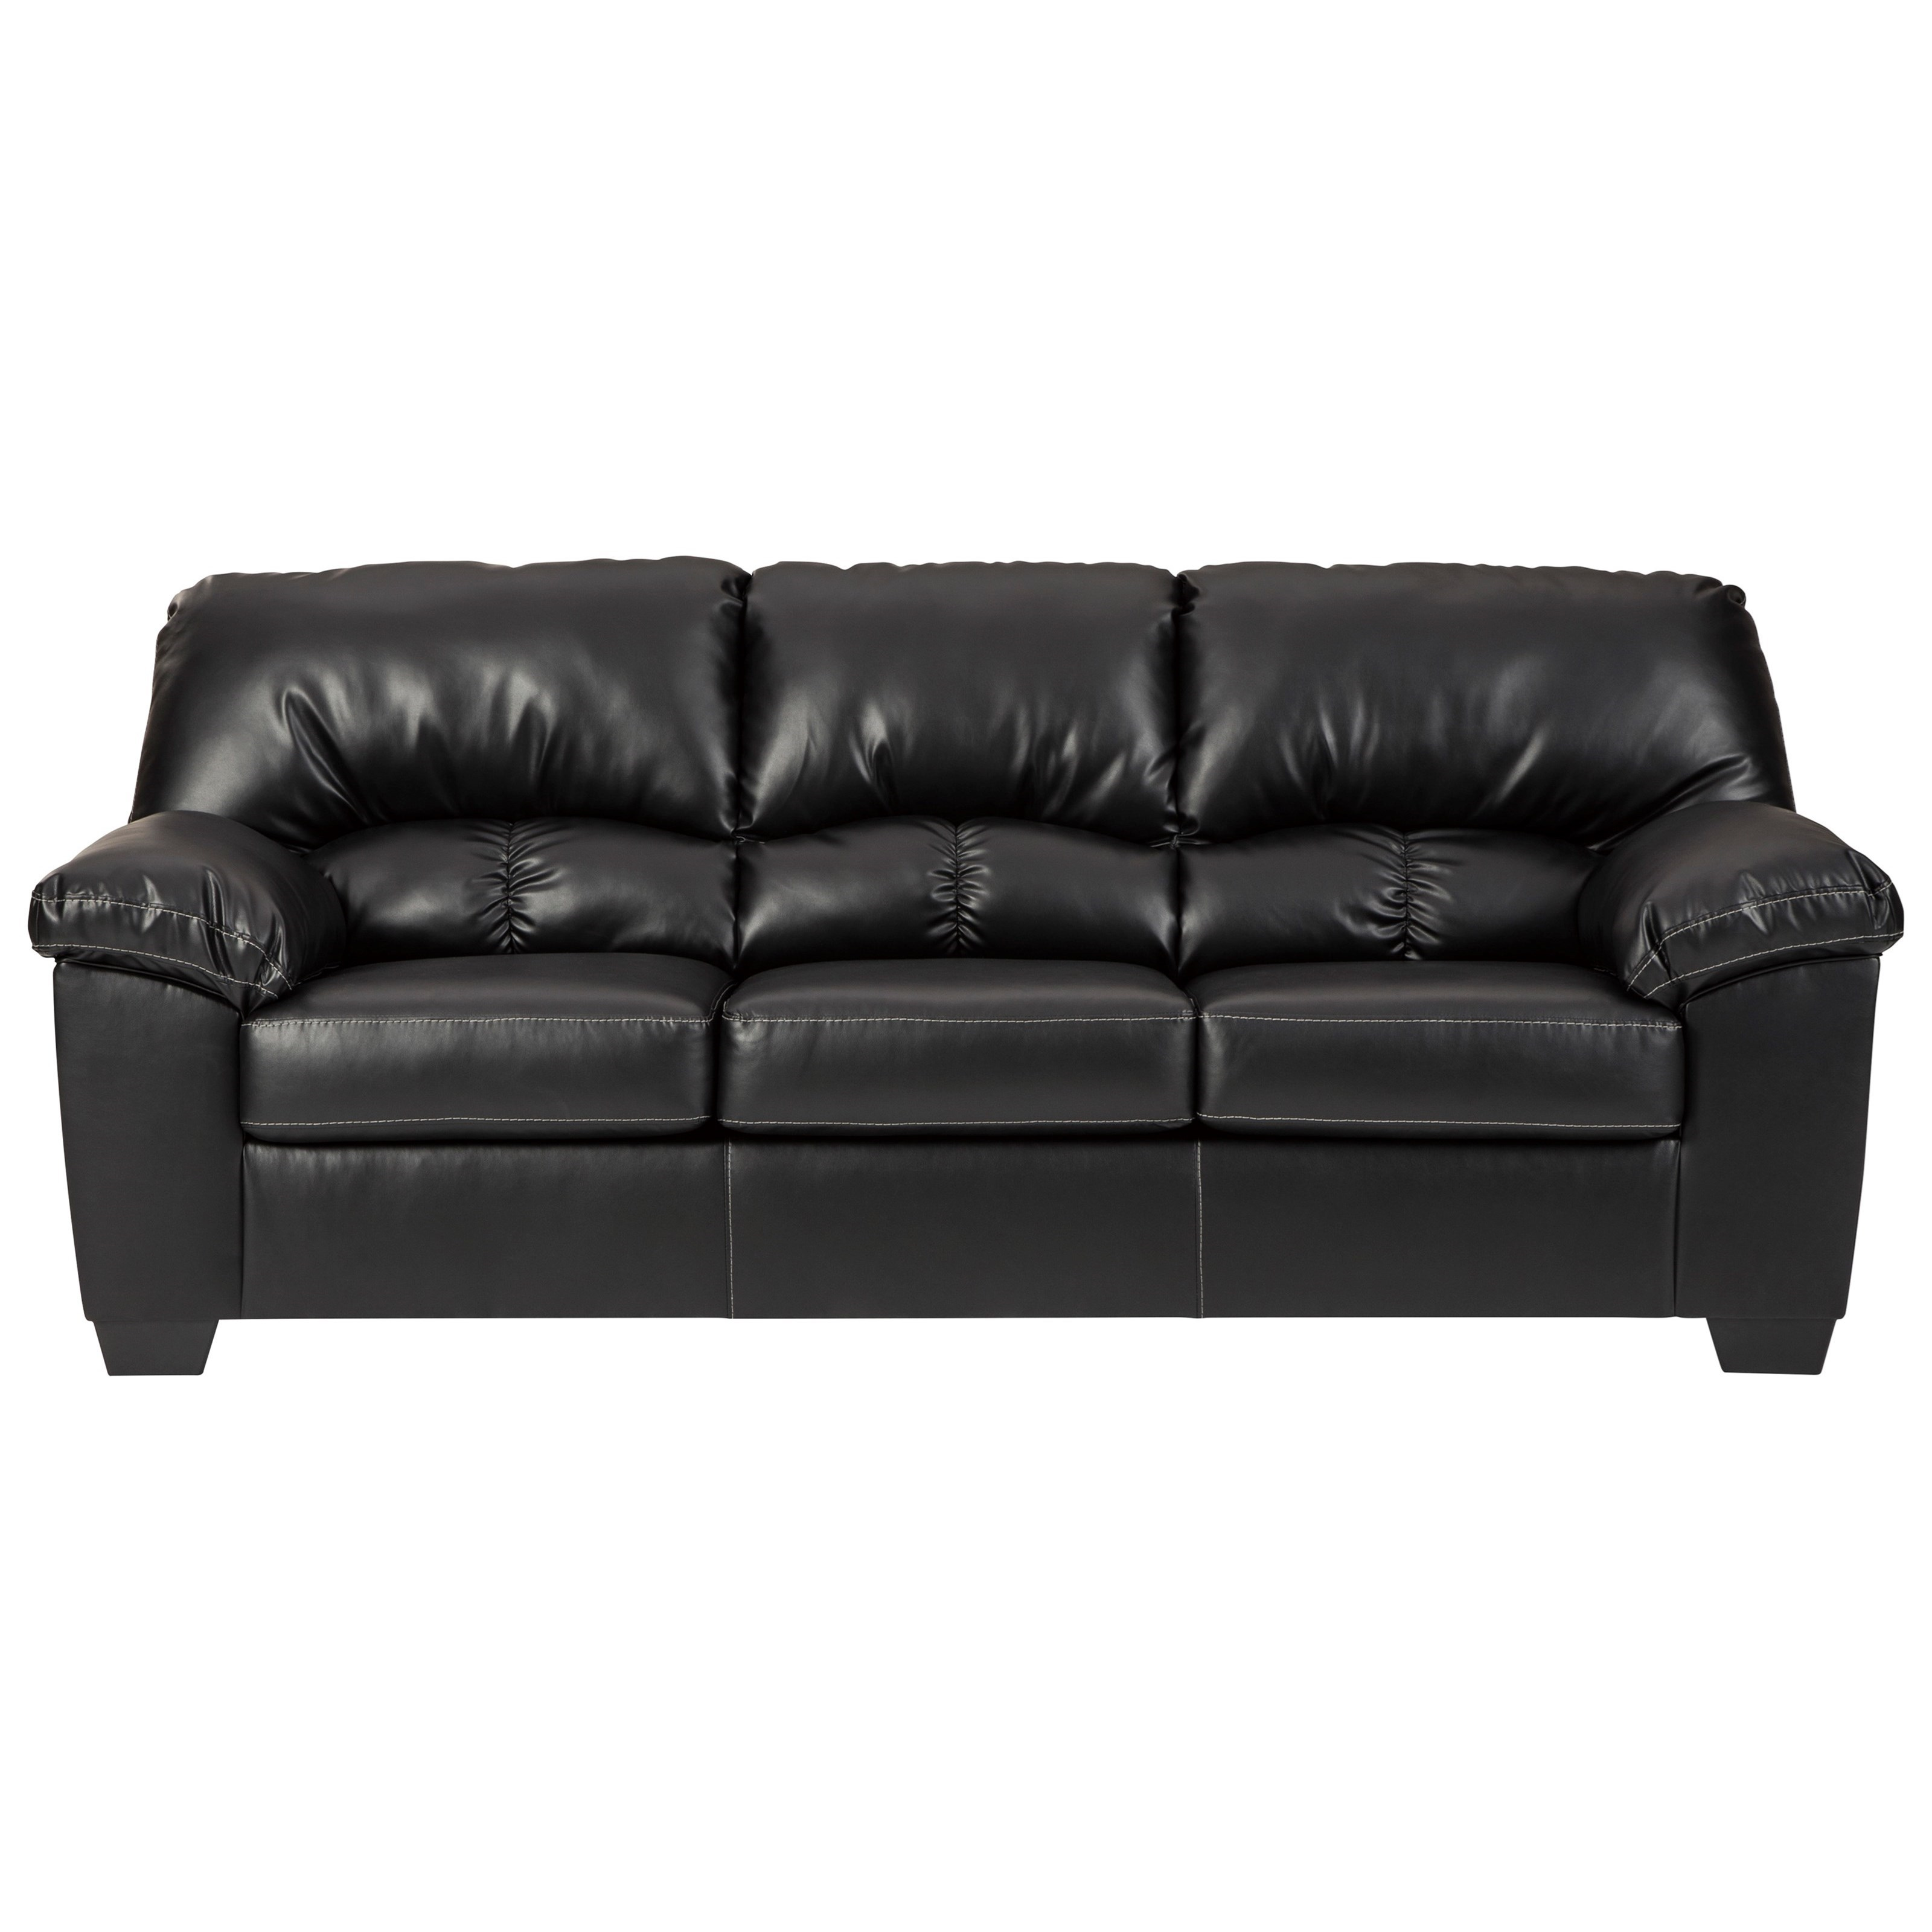 Brazoria Sofa by Benchcraft at Zak's Warehouse Clearance Center